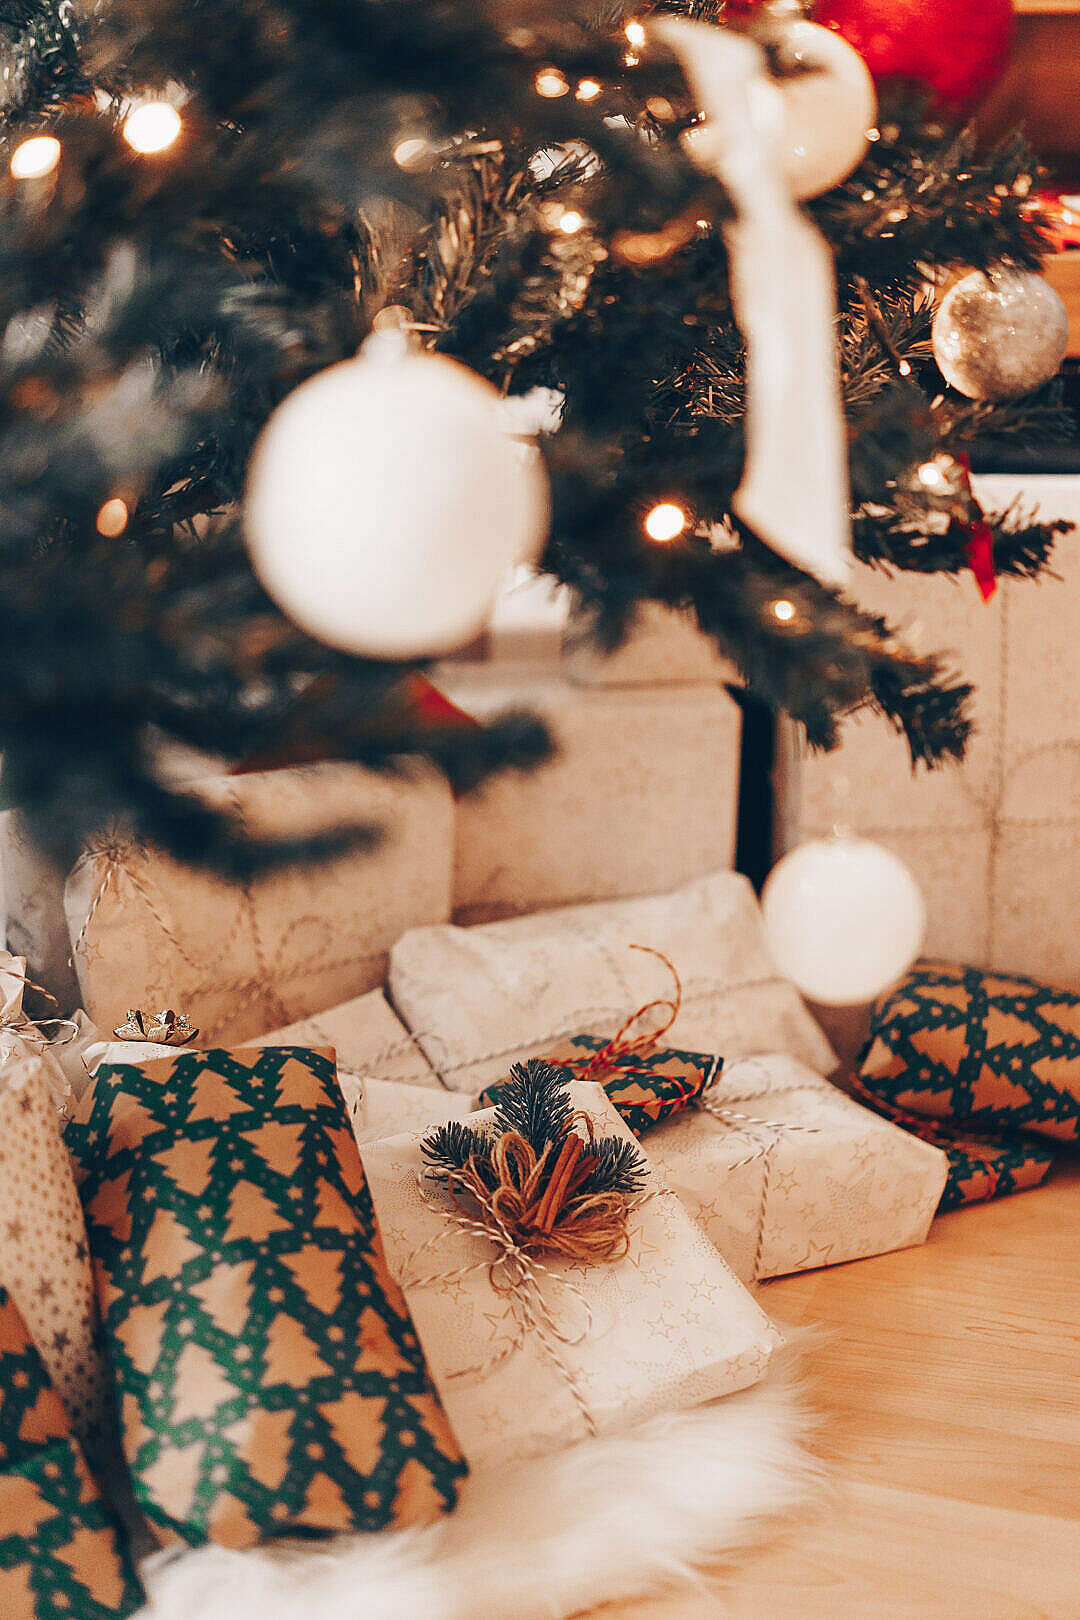 Download Christmas Presents under Christmas Tree FREE Stock Photo